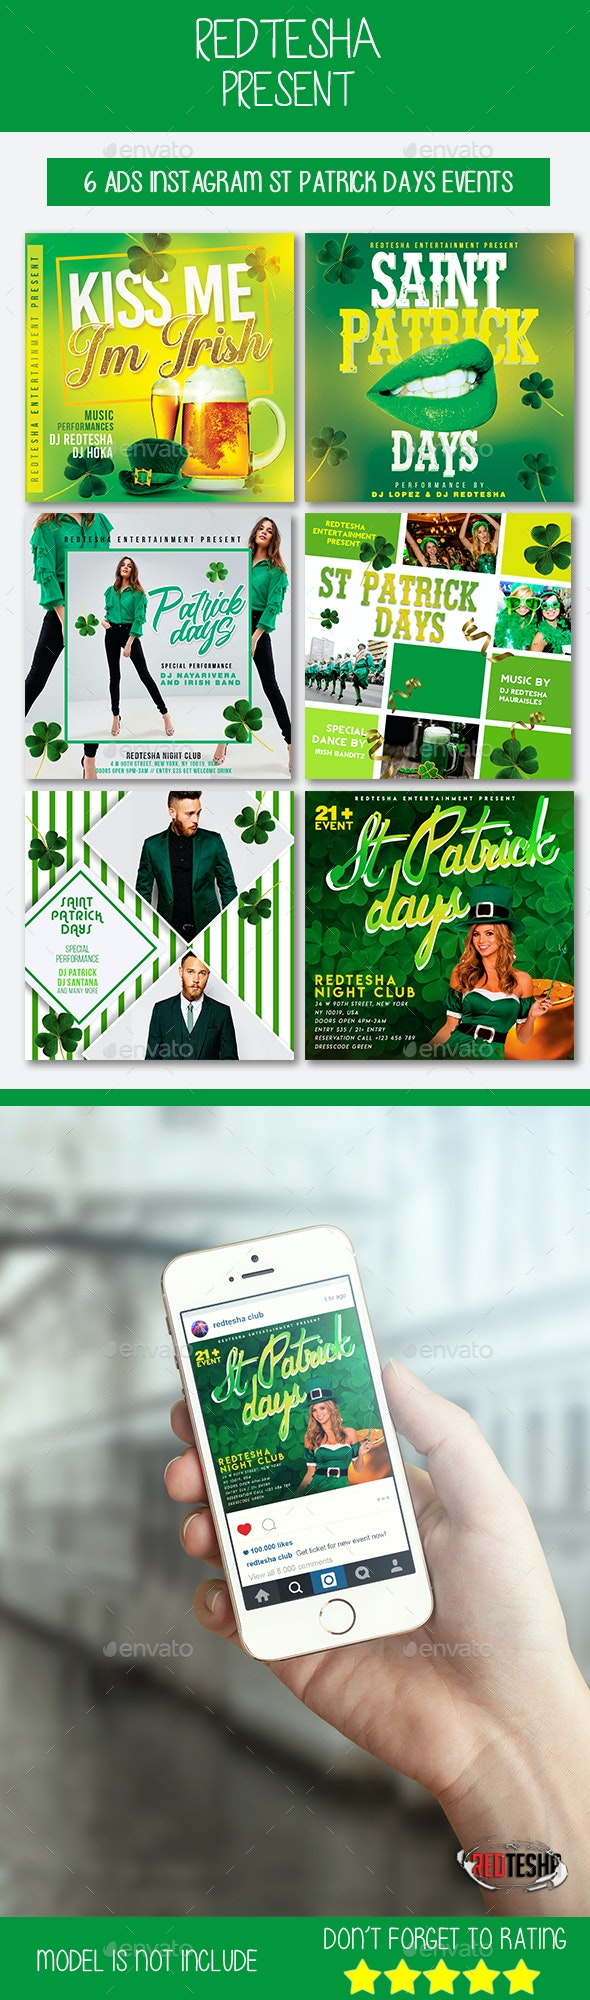 6 Instagram Saint Patrick Days Events - Social Media Web Elements